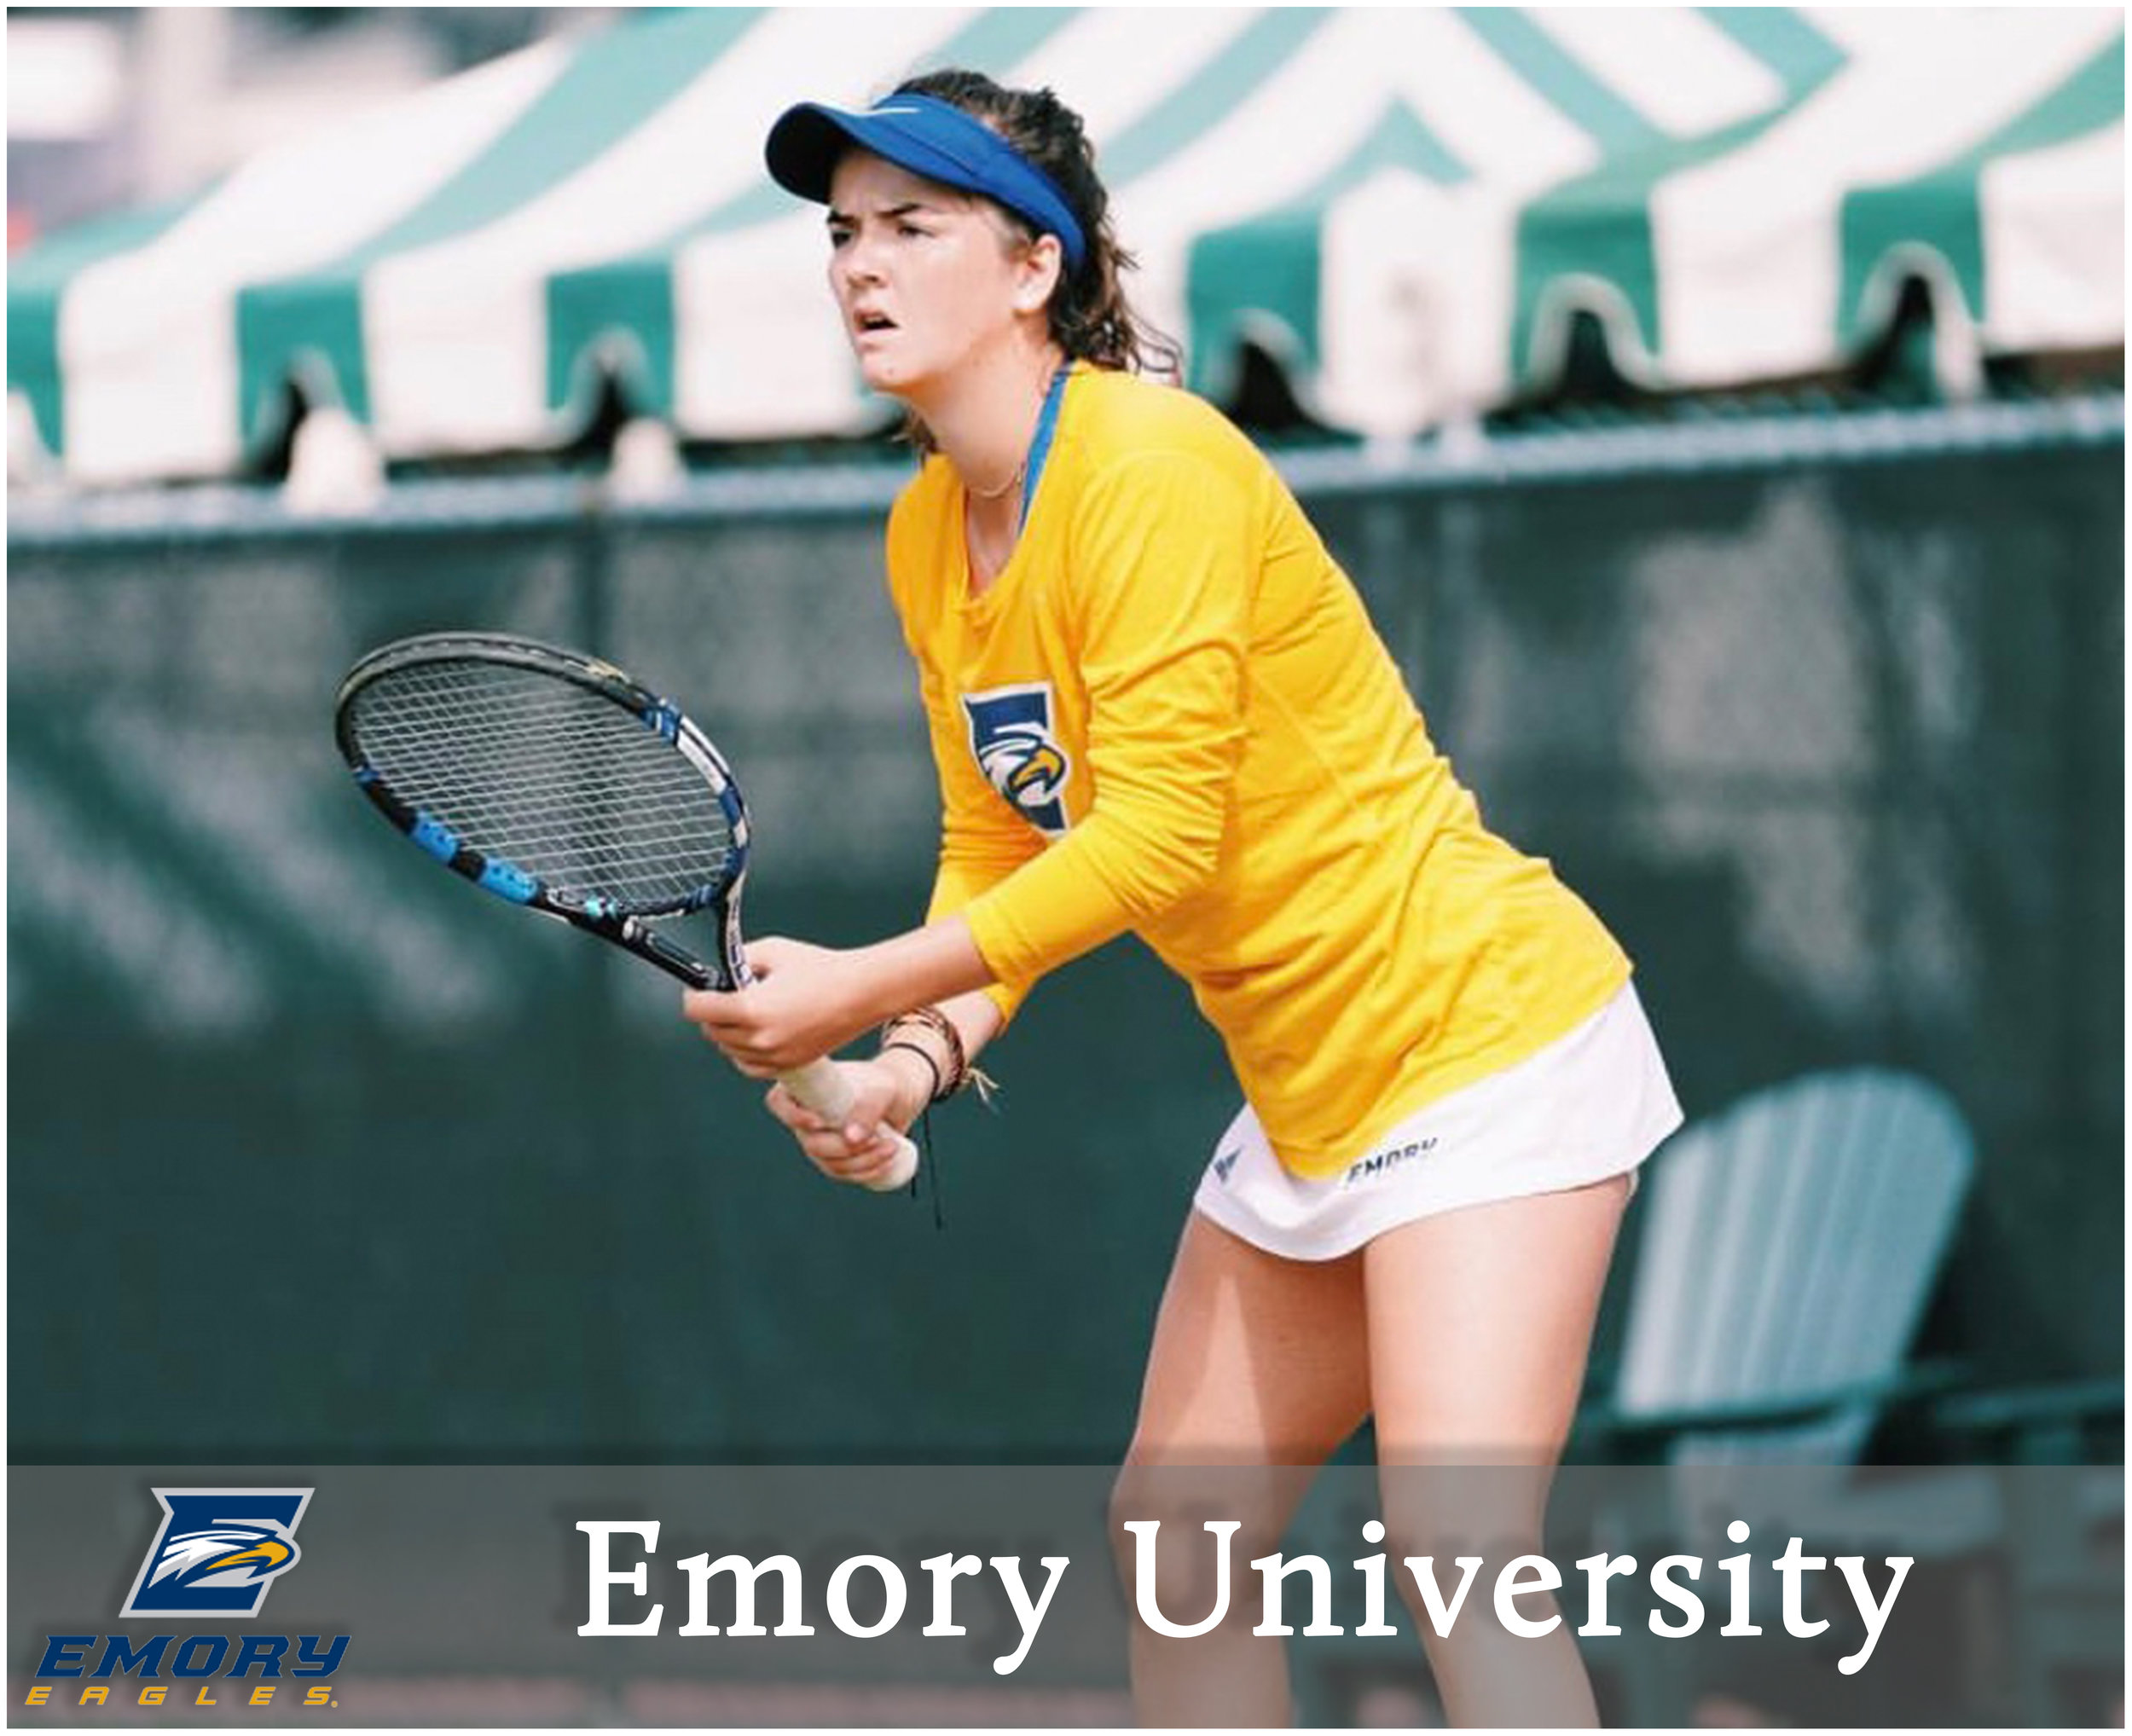 - Emma Cartledge (Roanoke, Virginia)4-Star Recruit - #127 on TennisRecruiting2-time Virginia High School State Champion